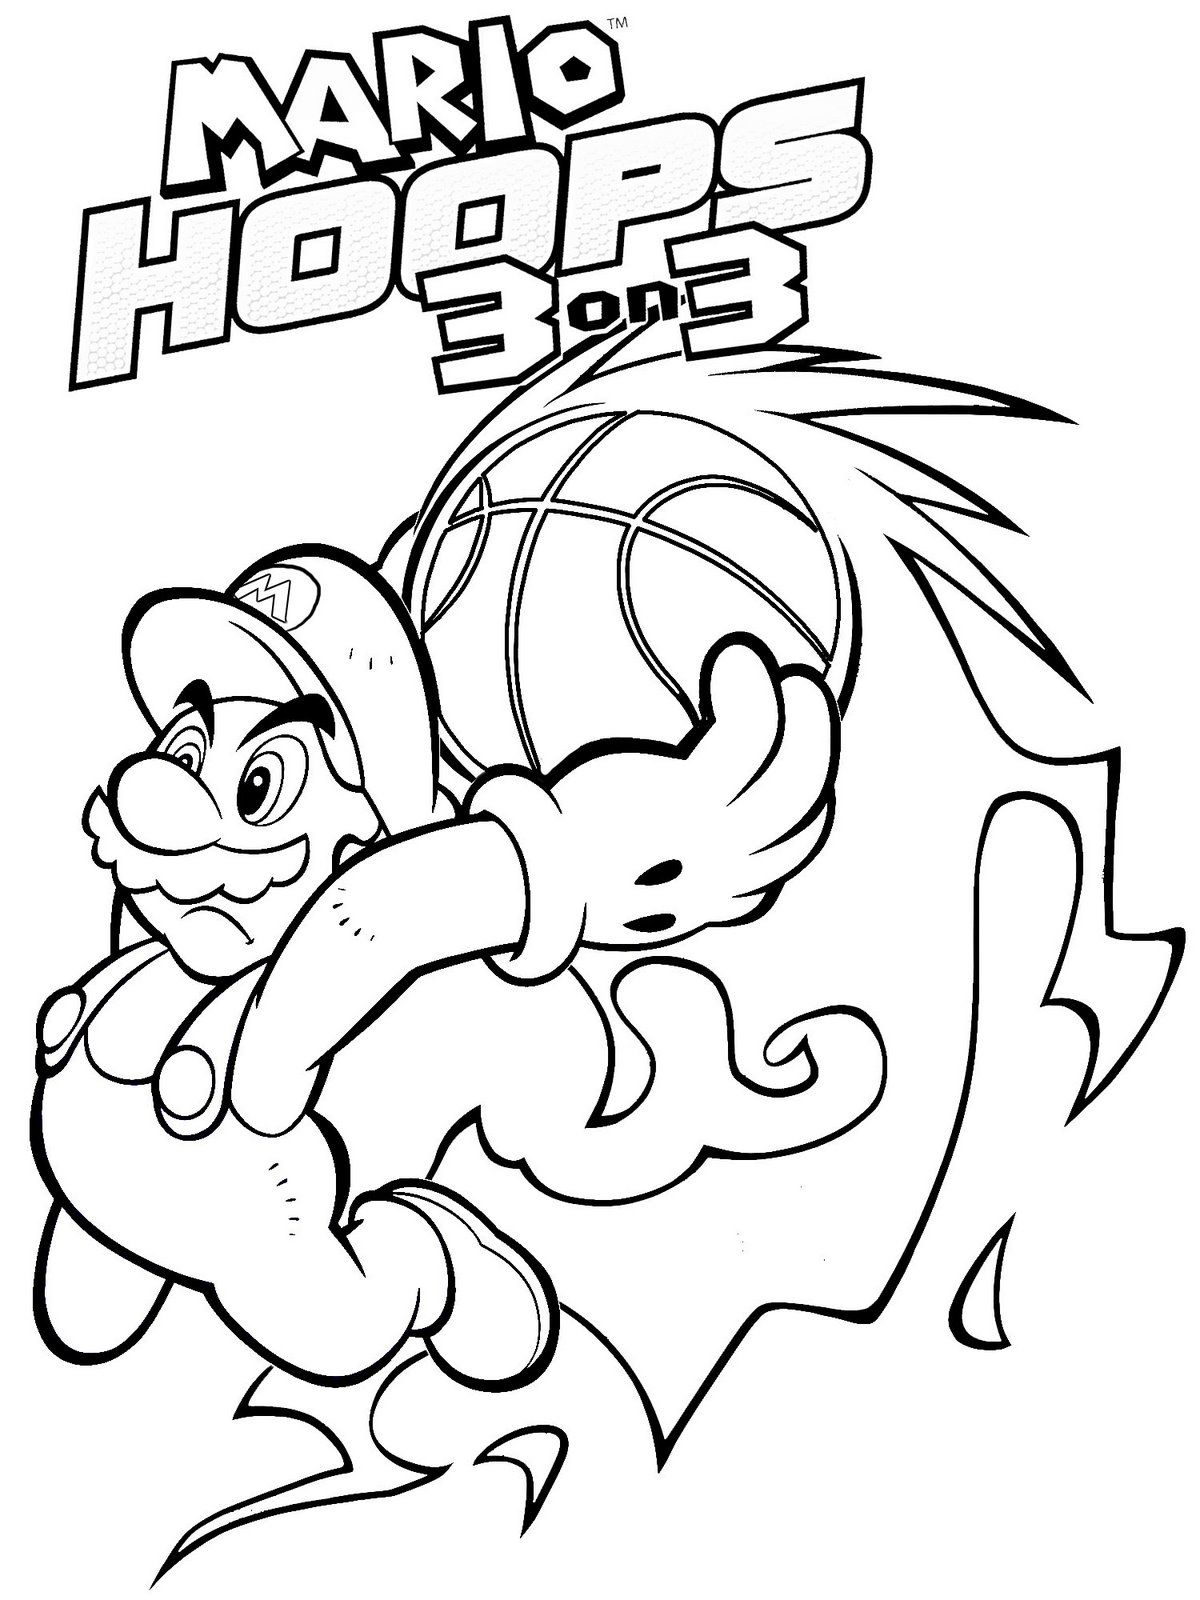 Mario Coloring Pages To Print Coloring Book Ideas Free Marioloring Pictures To Print For Kids